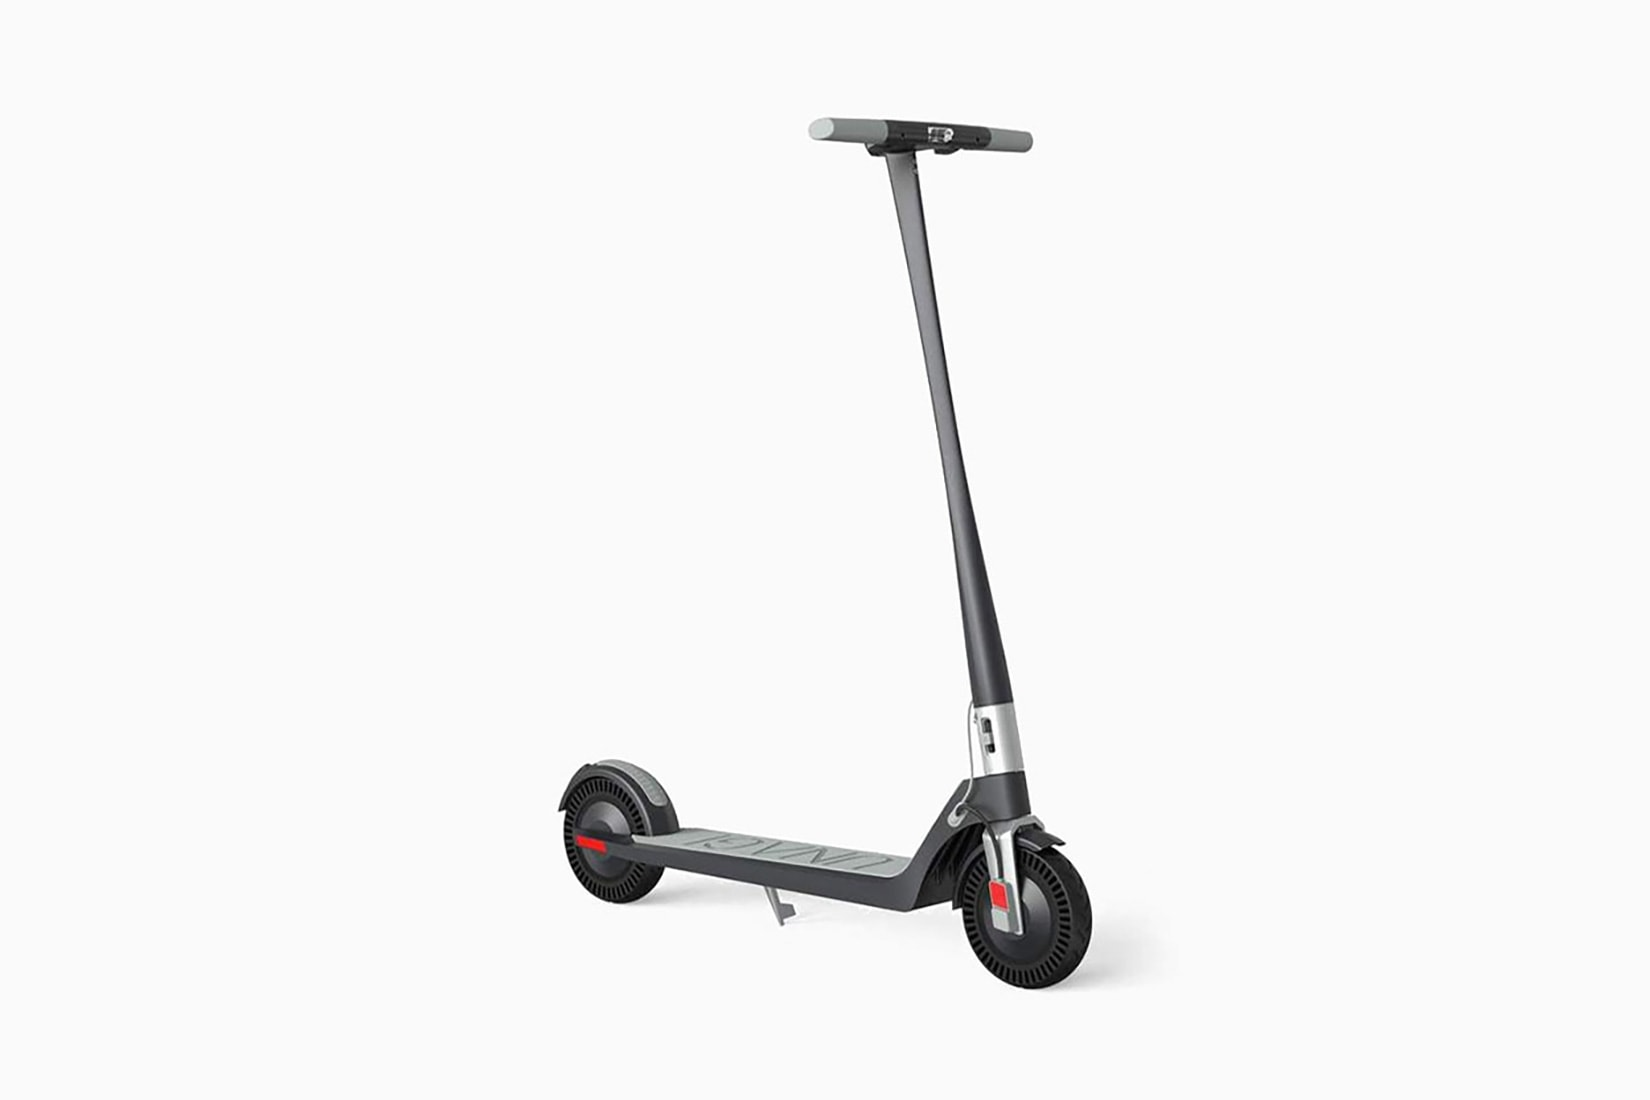 best electric scooter unagi model one review - Luxe Digital